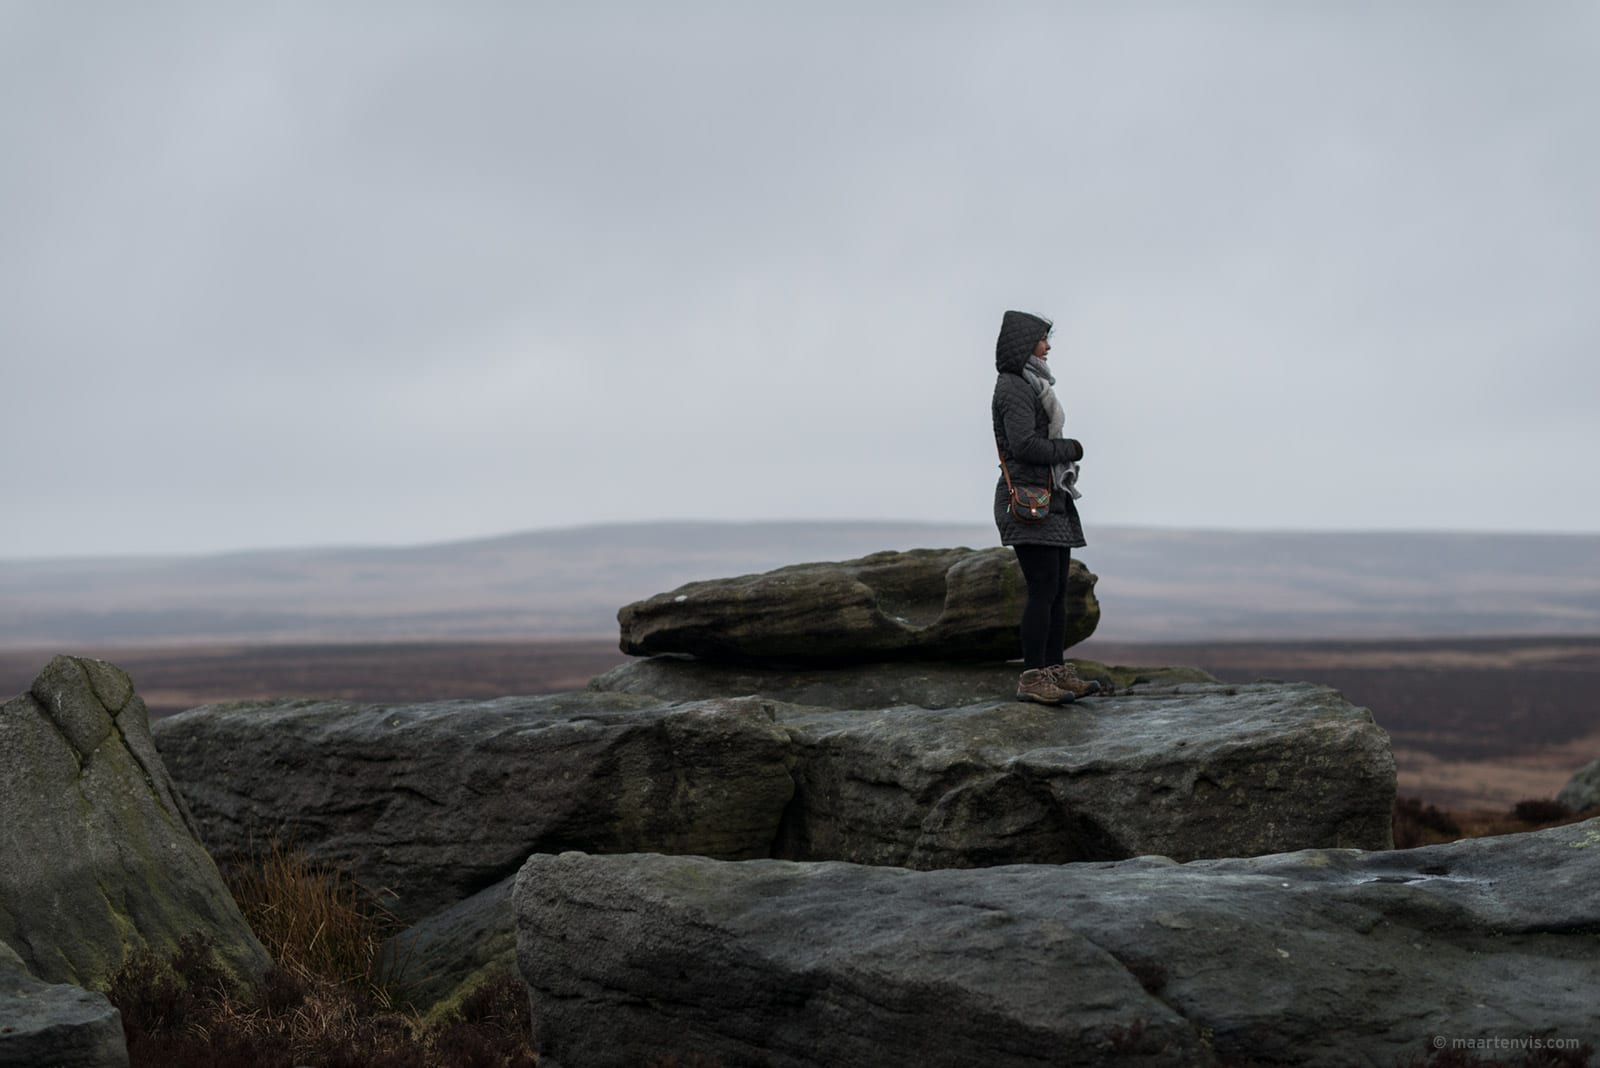 20160324 8151 - Hiking on the Moors with the Brontë sisters